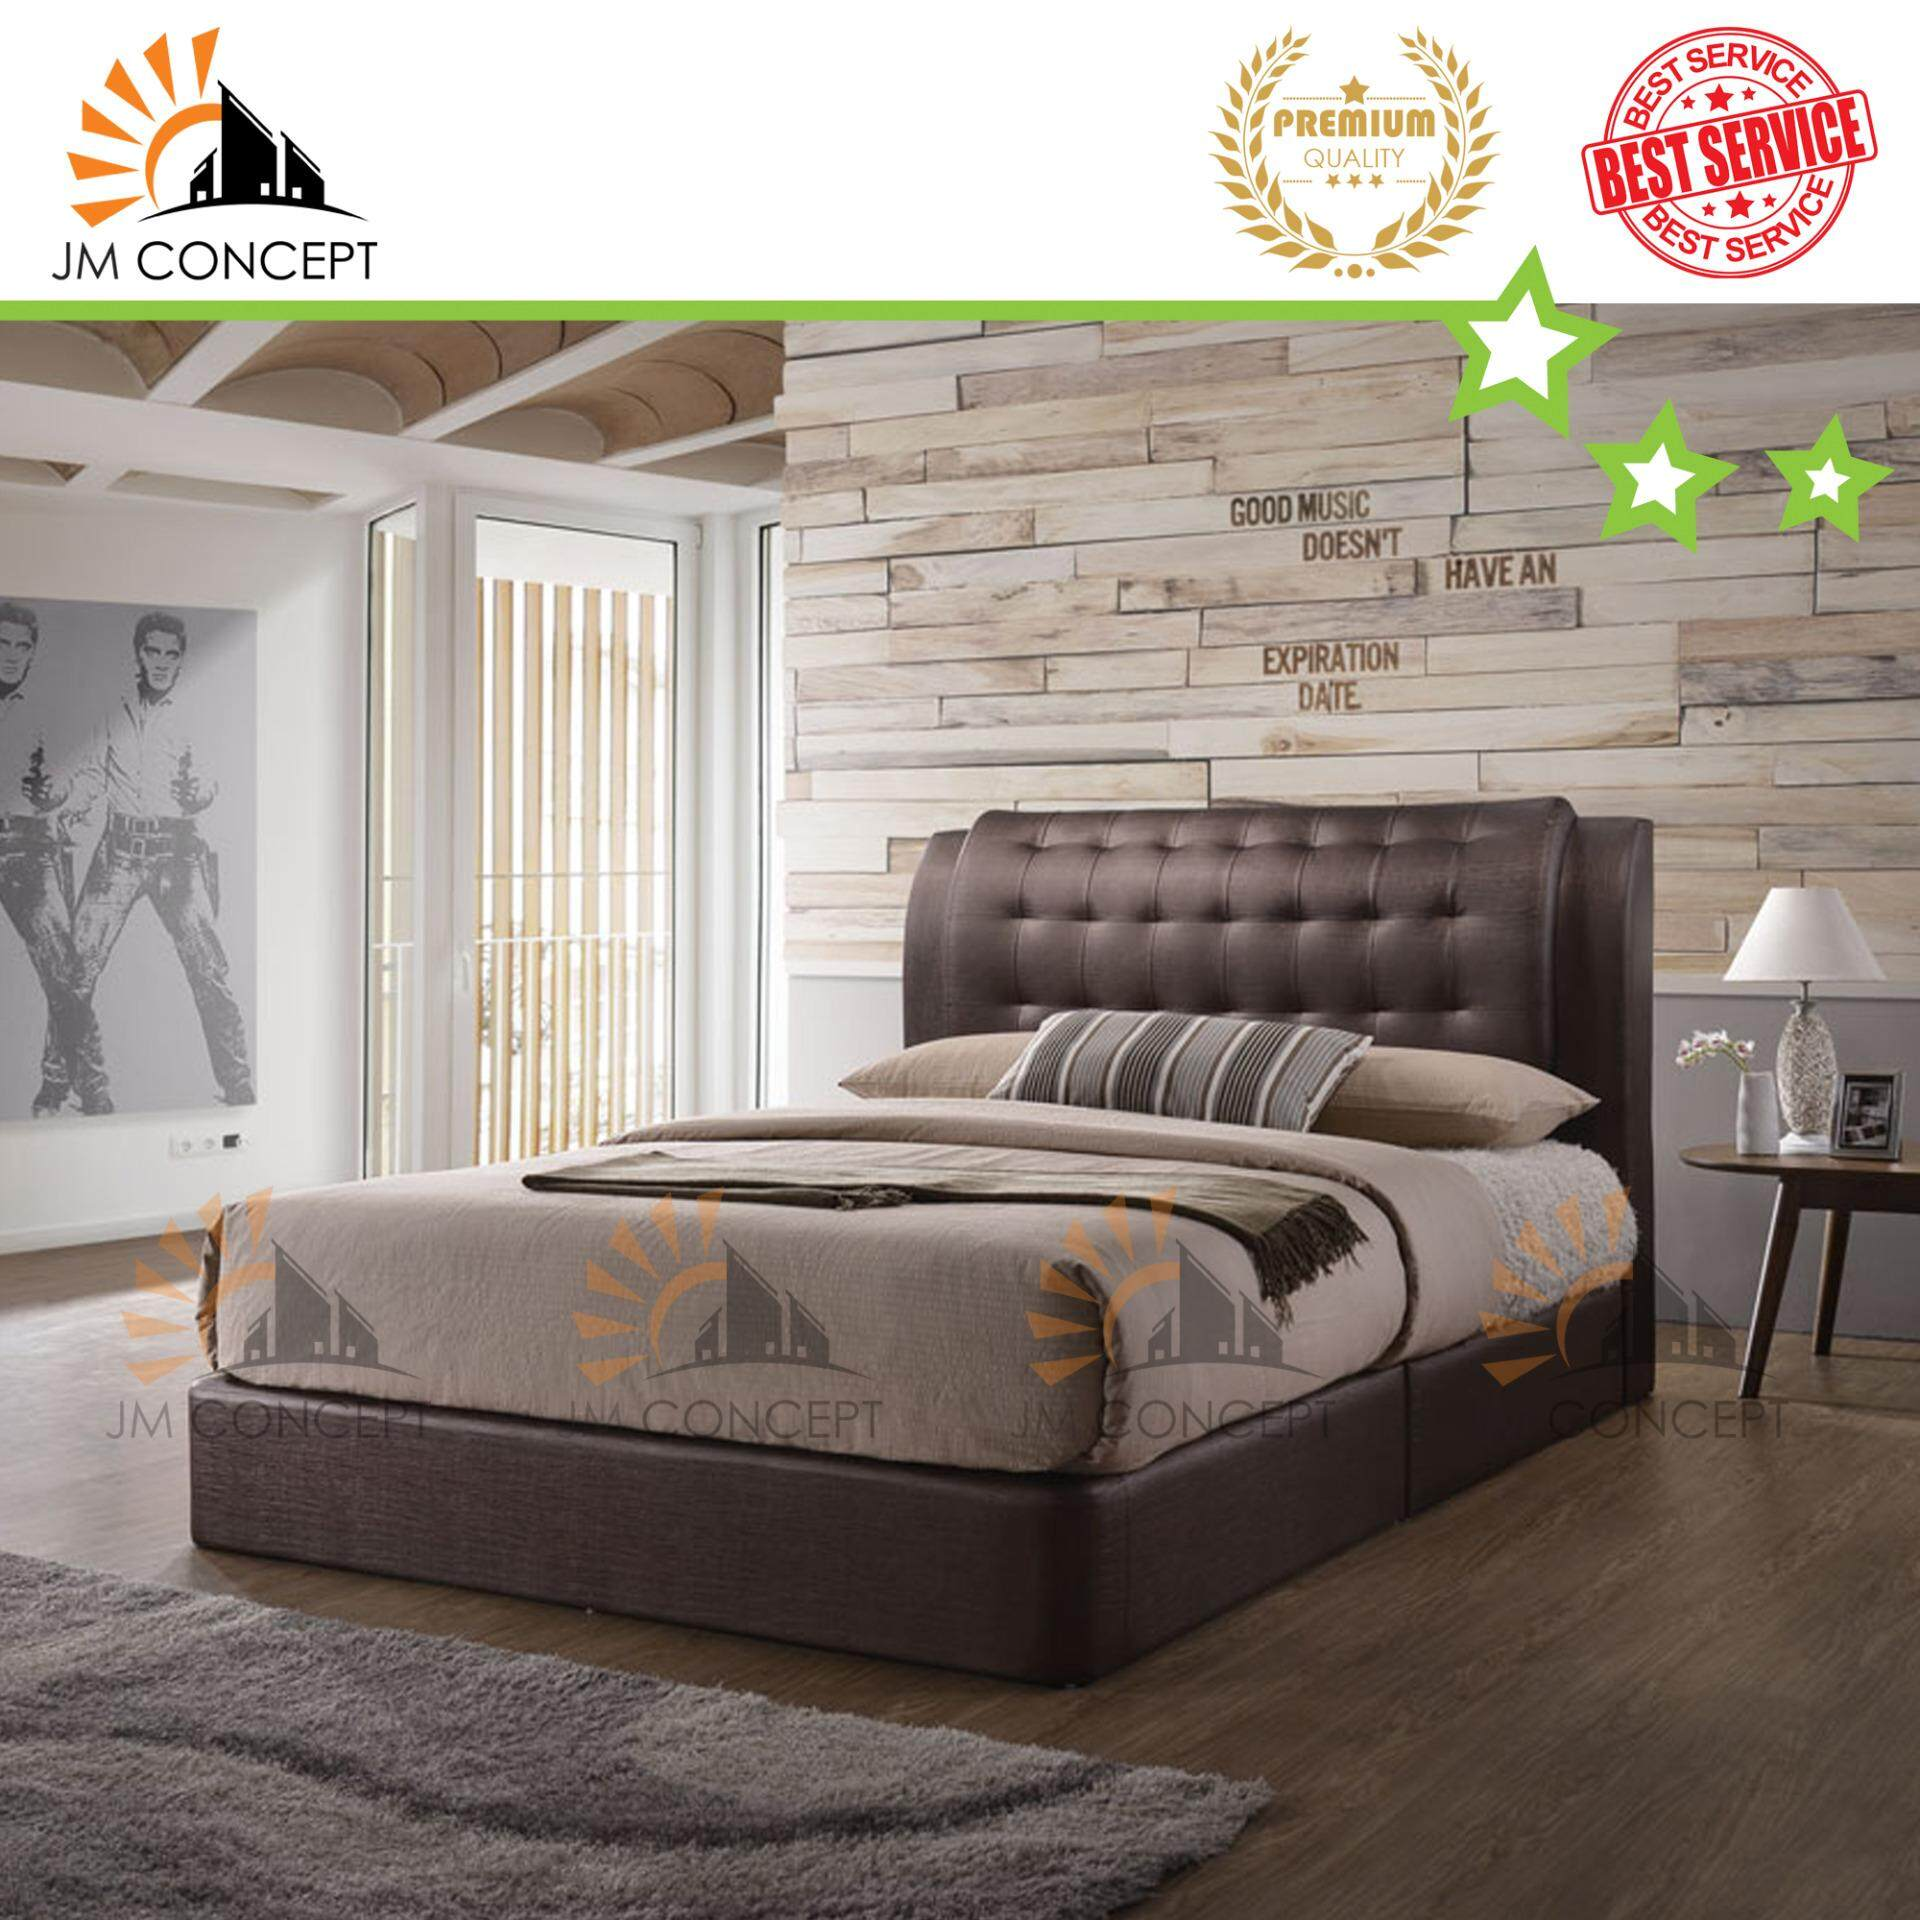 with case simple nice standard bedding comforter sheet originalviews and bed tuffed grey pillow white matteo